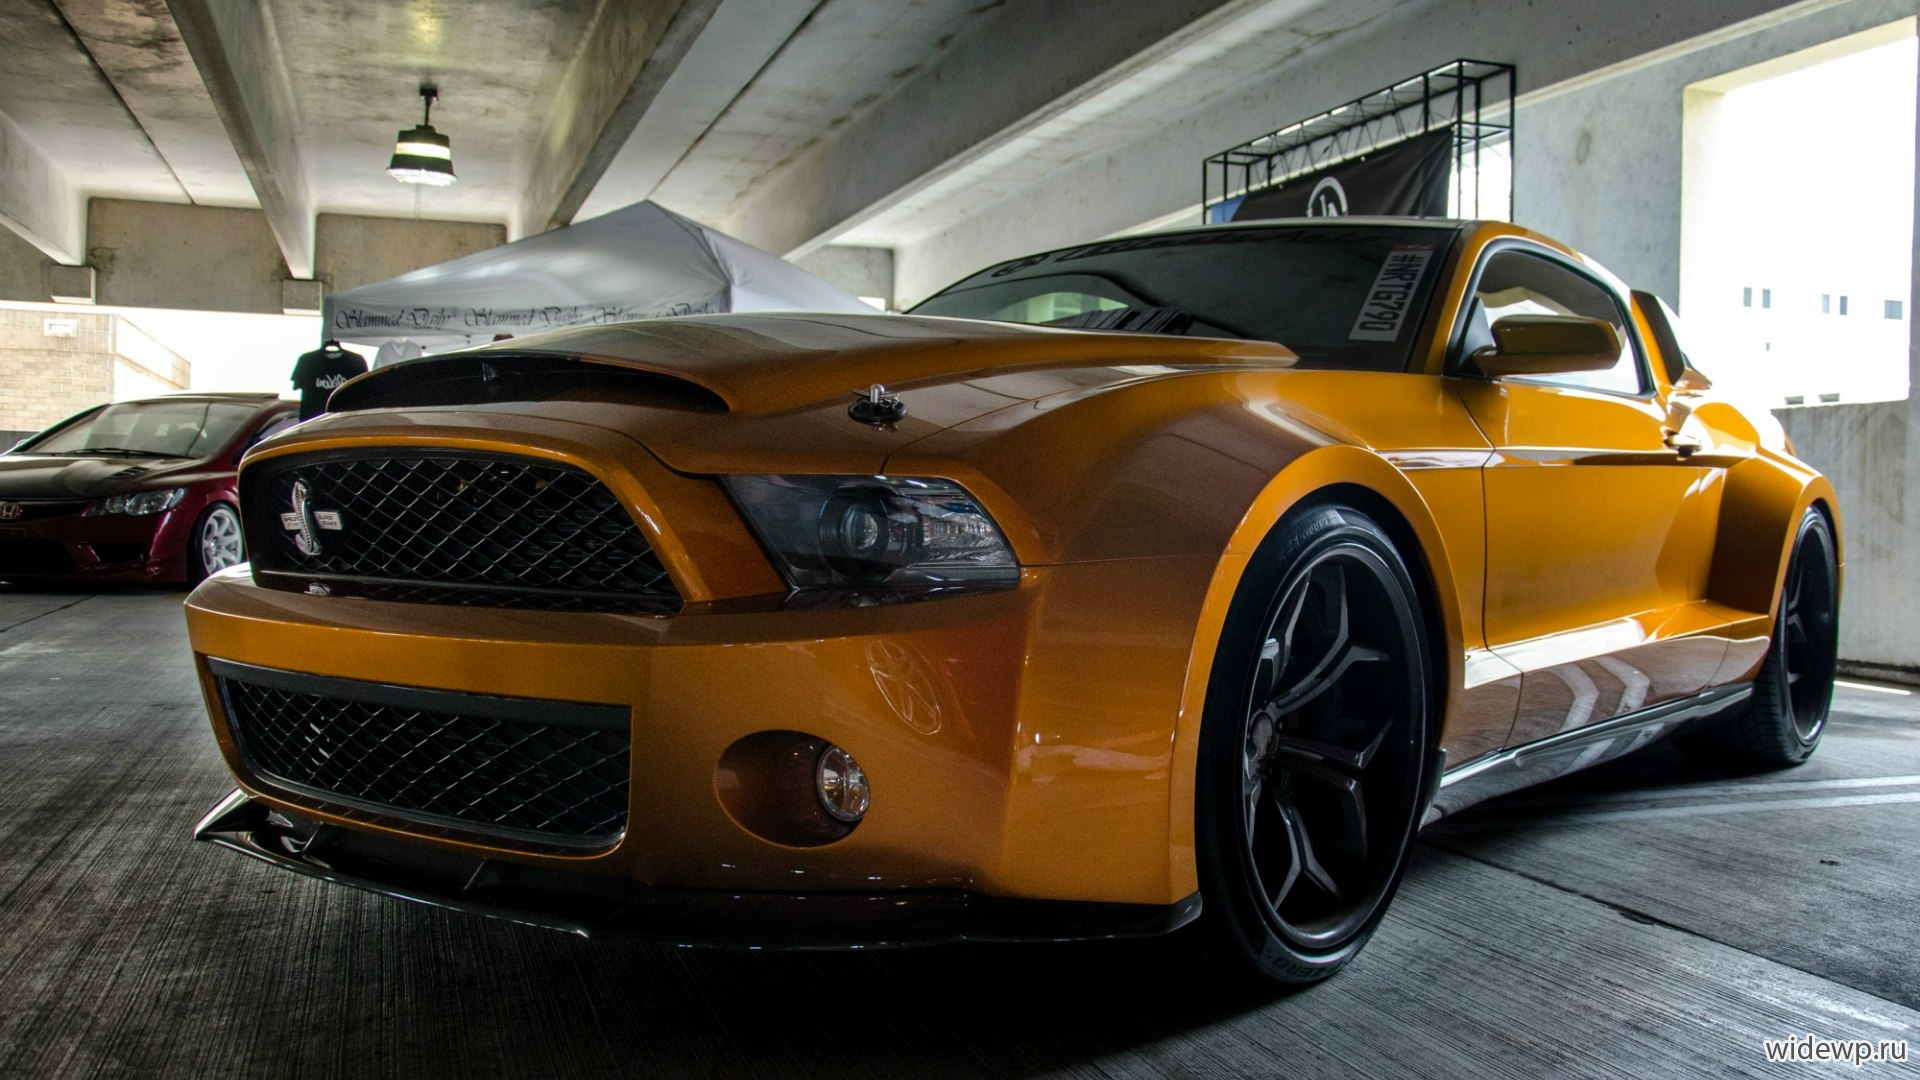 Автомобили Ford Mustang Shelby GT500 Super Snake